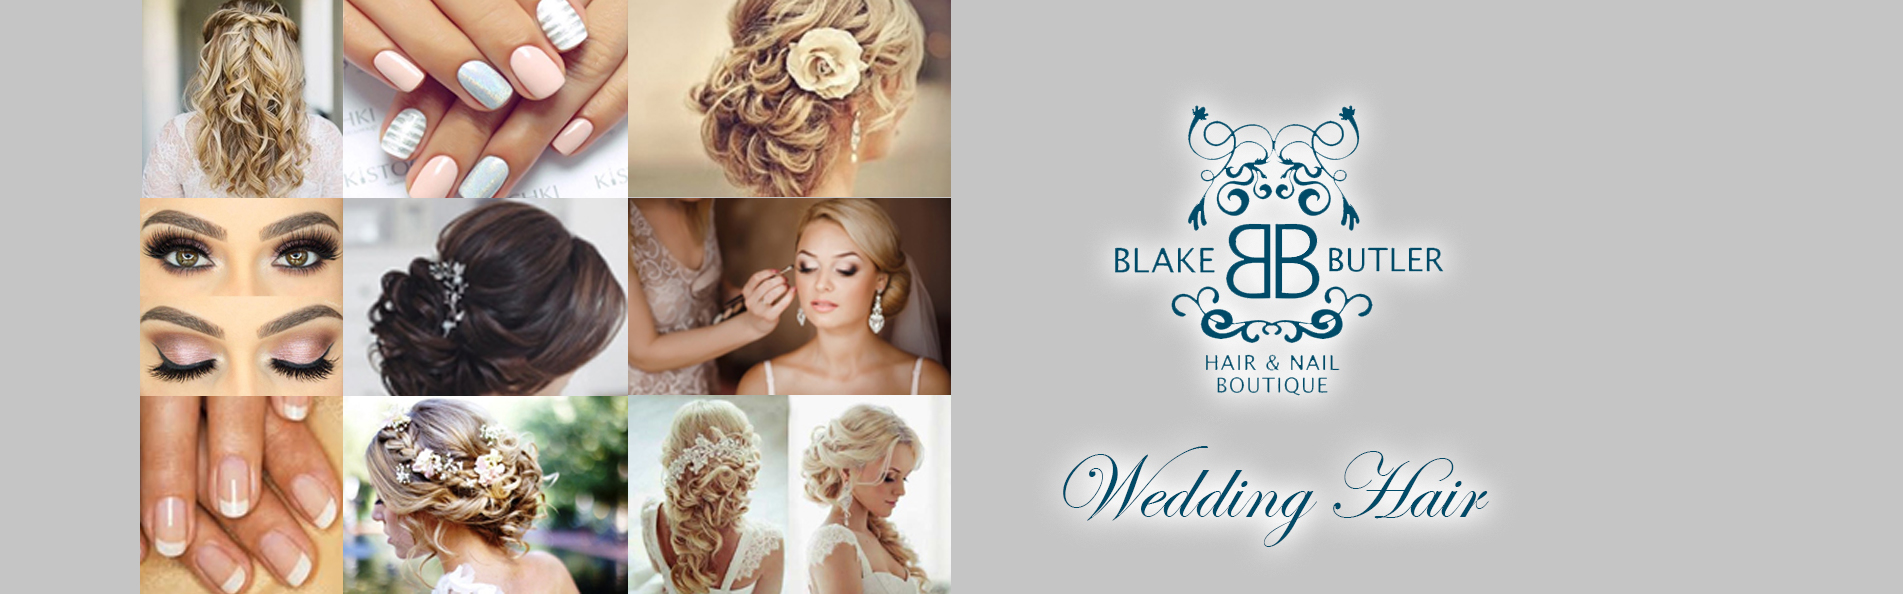 wedding-hair-banner